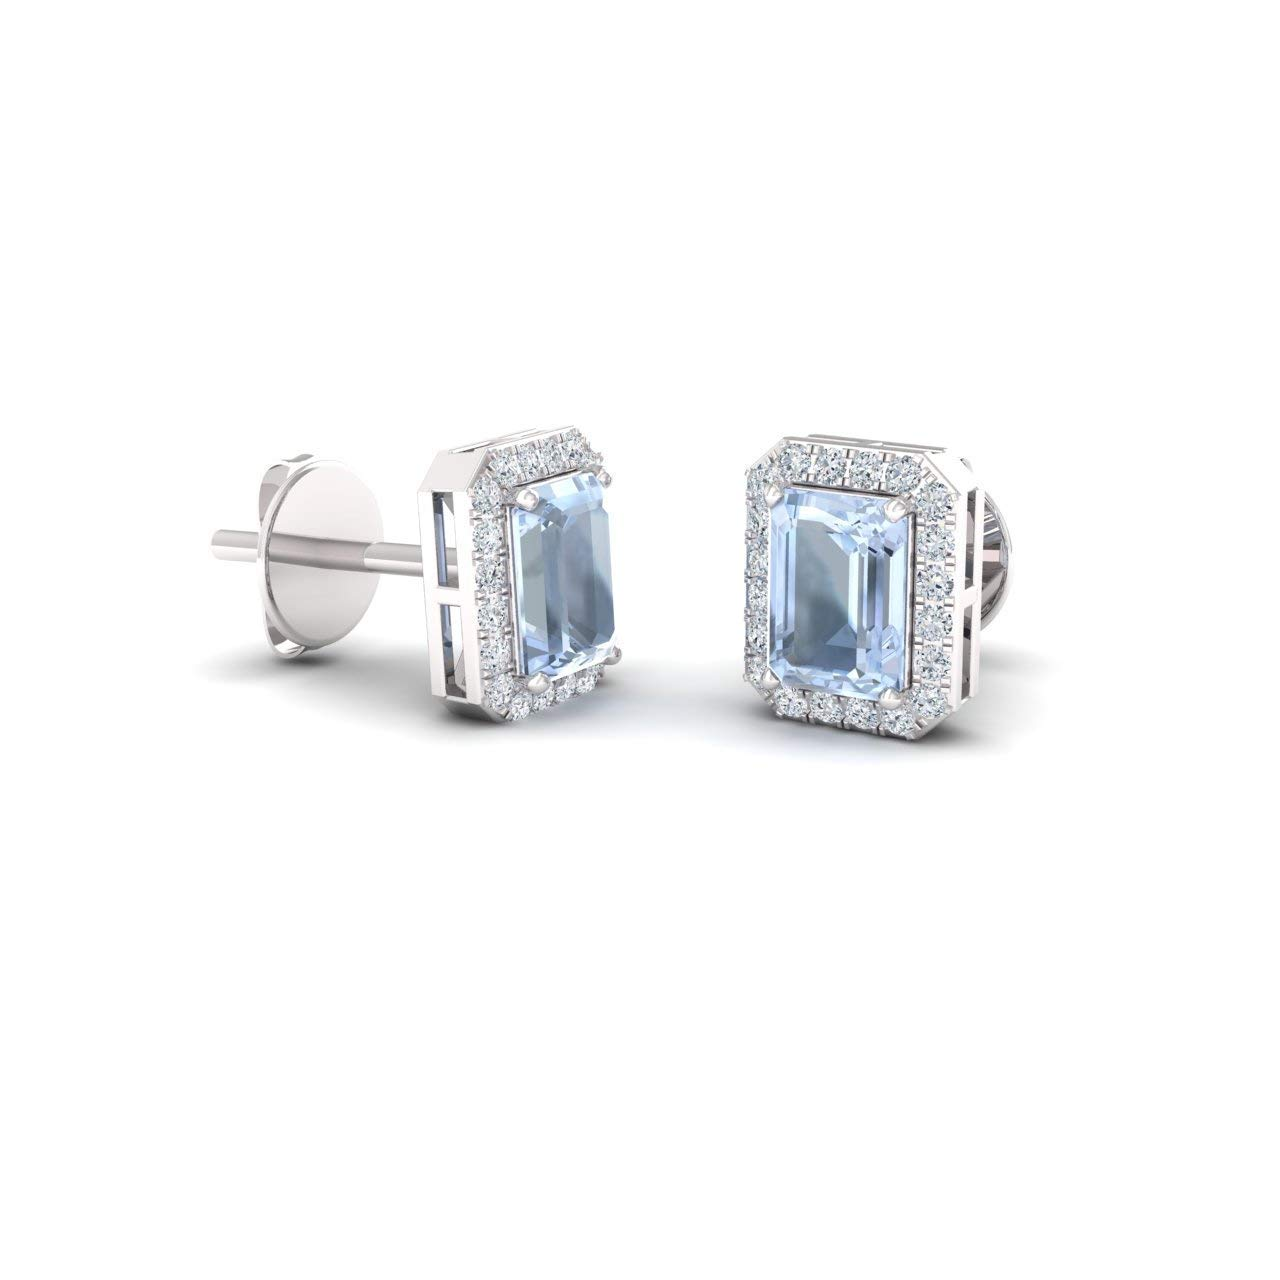 Diamondere Natural and Certified Gemstone and Diamond Petite Stud Earrings in 14K White Gold | 0.67 Carat Halo Earrings for Women